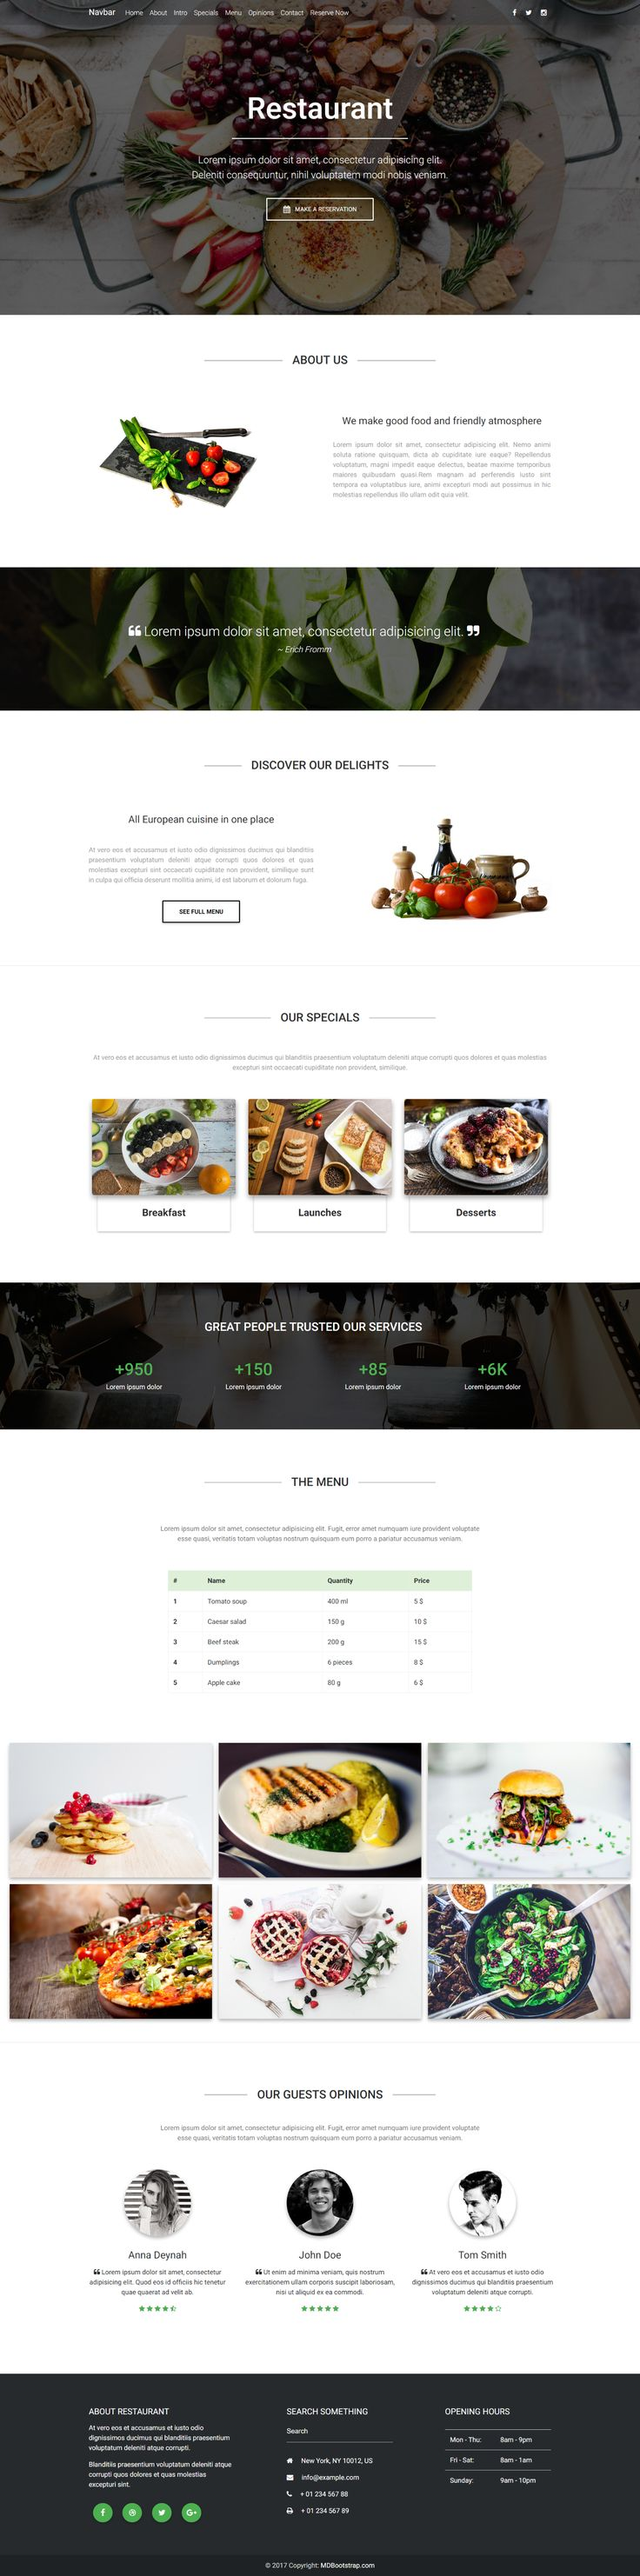 A presentation of fully responsive Restaurant Landing Page Template, created with Material Design for Bootstrap